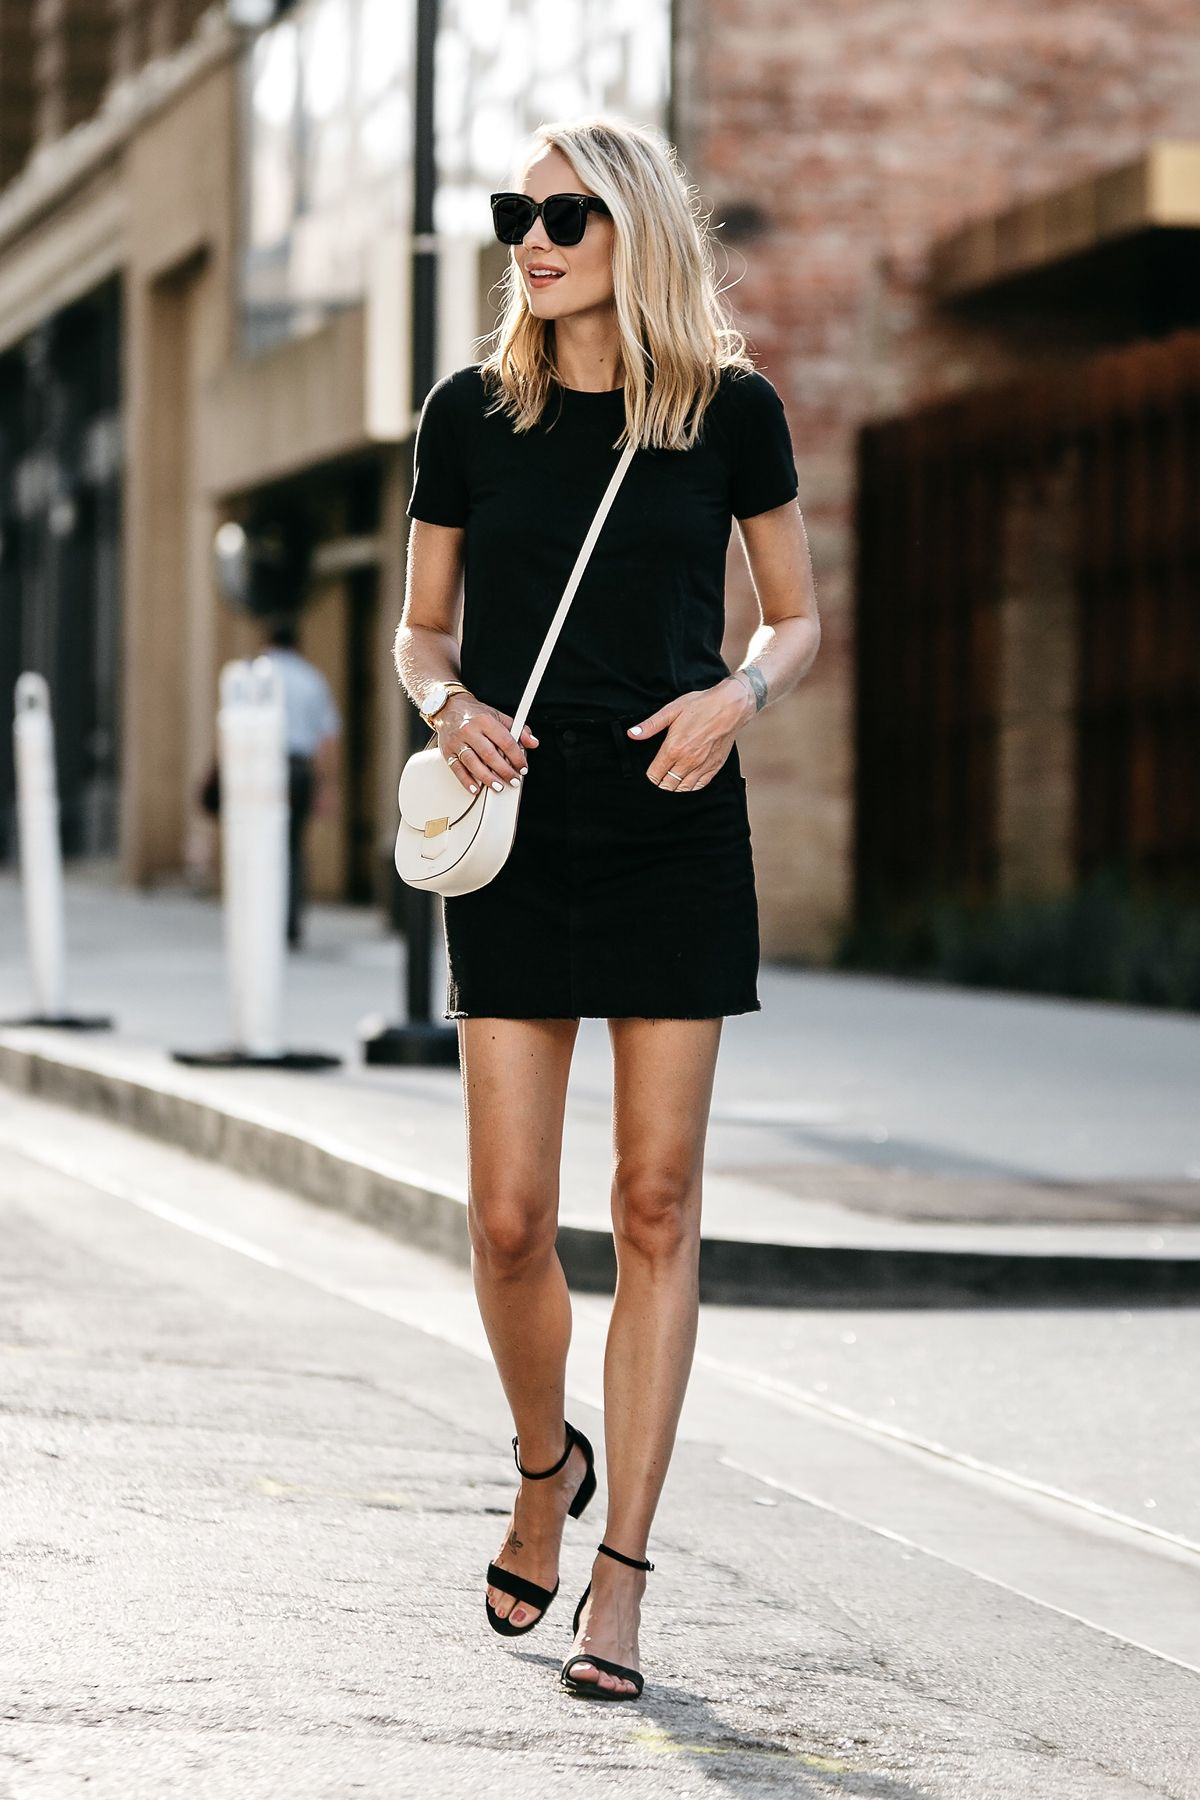 c40975ba7b3 Blonde Woman Wearing Everlane Black Fitted Tshirt Frame Black Denim Skirt  Outfit Celine White Trotteur Handbag Black Ankle Strap Sandals Fashion  Jackson ...